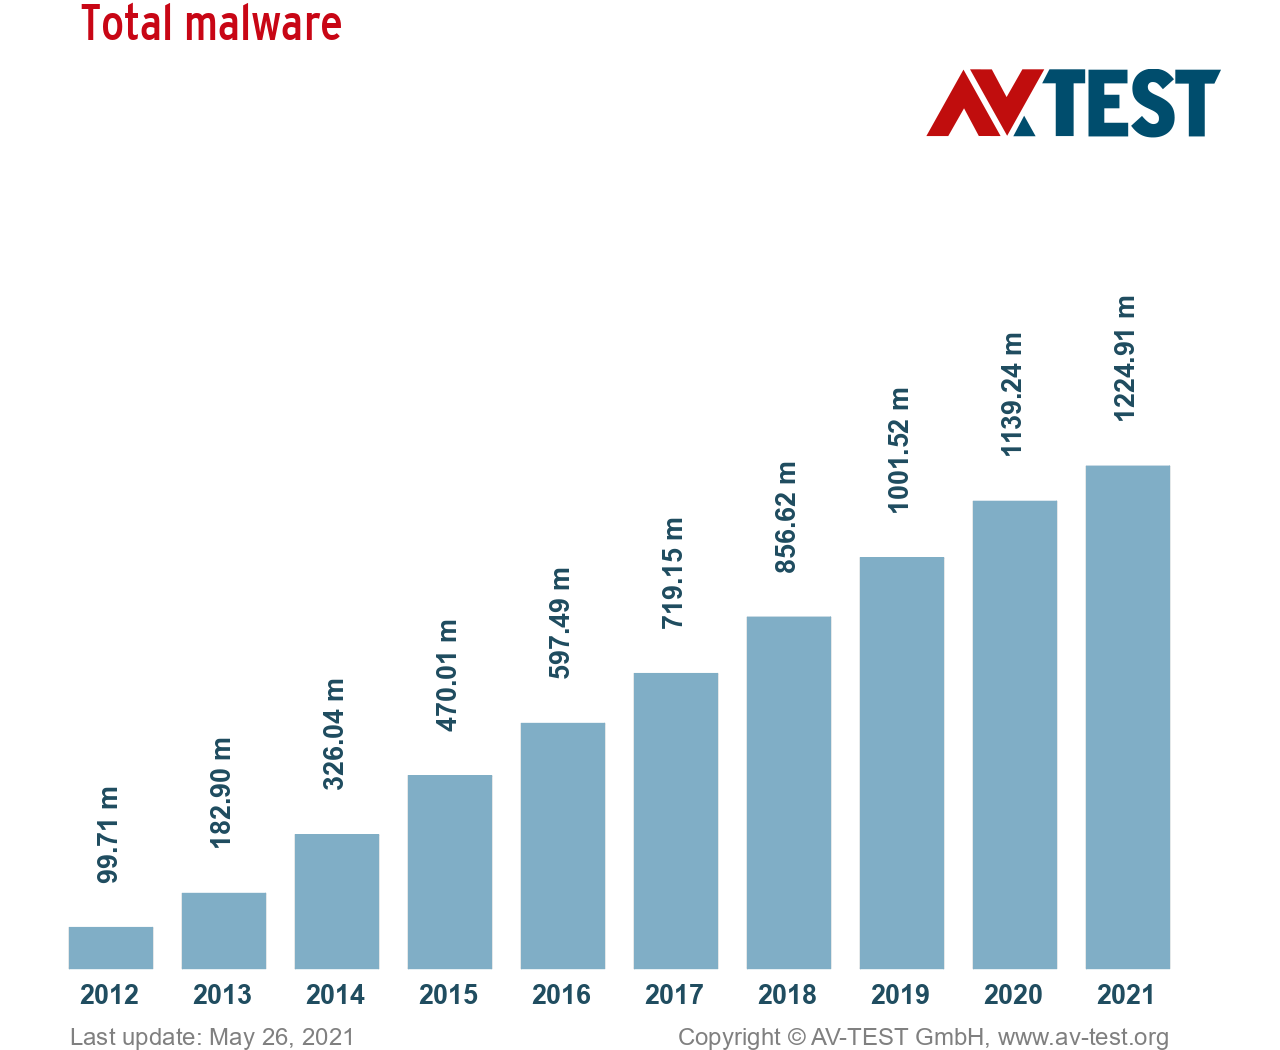 AV-Test — The amount of malware discovered from 2011 to 2021